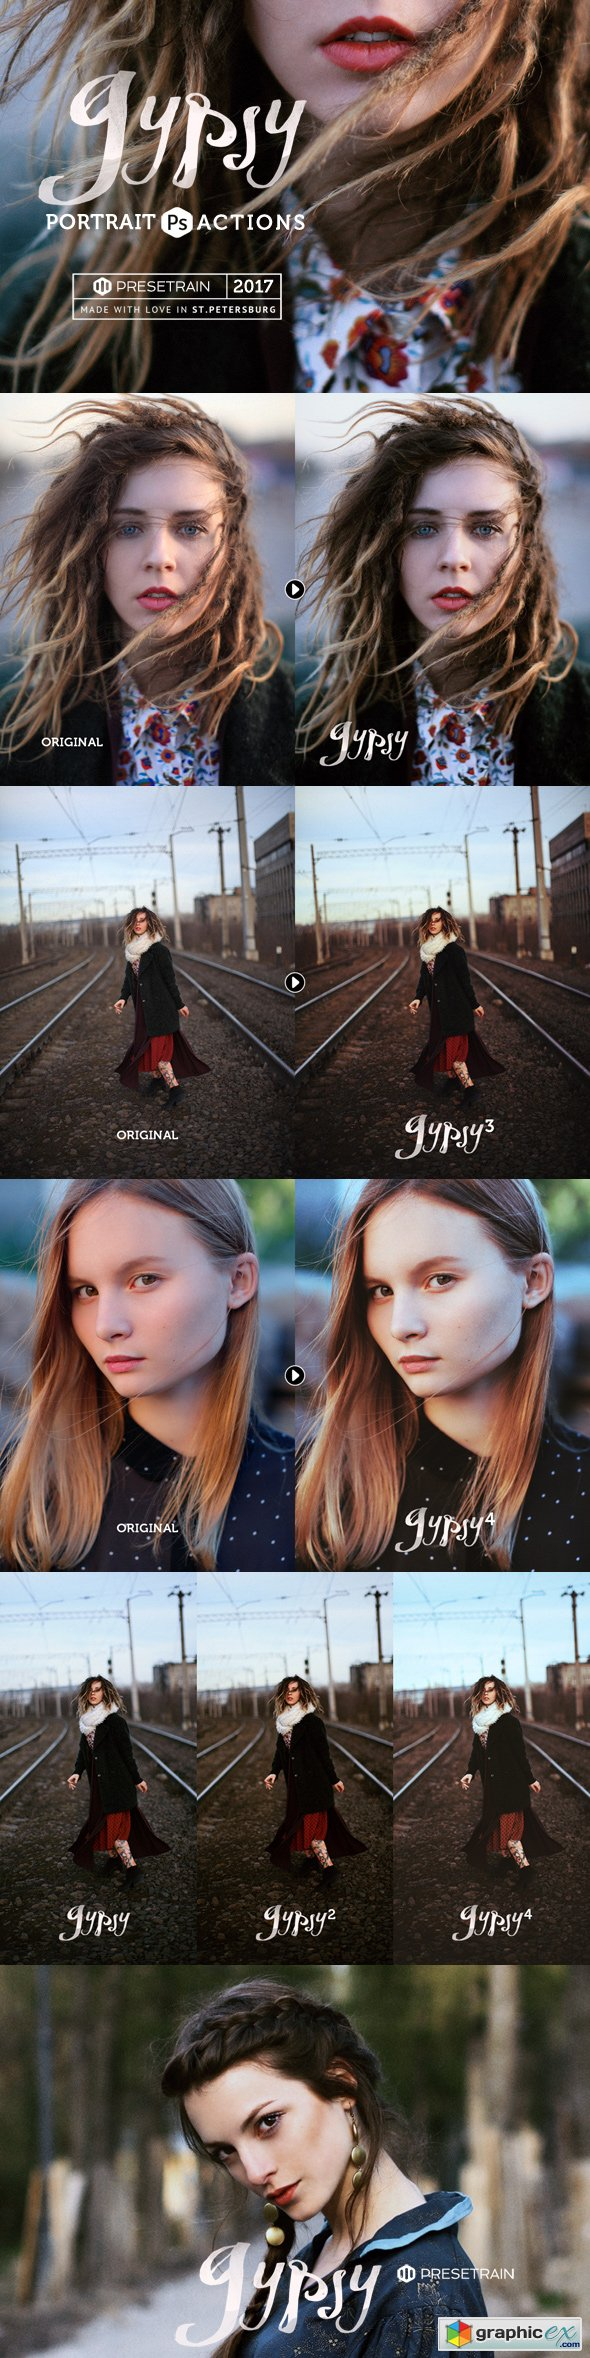 Gypsy Portrait Photoshop Actions » Free Download Vector